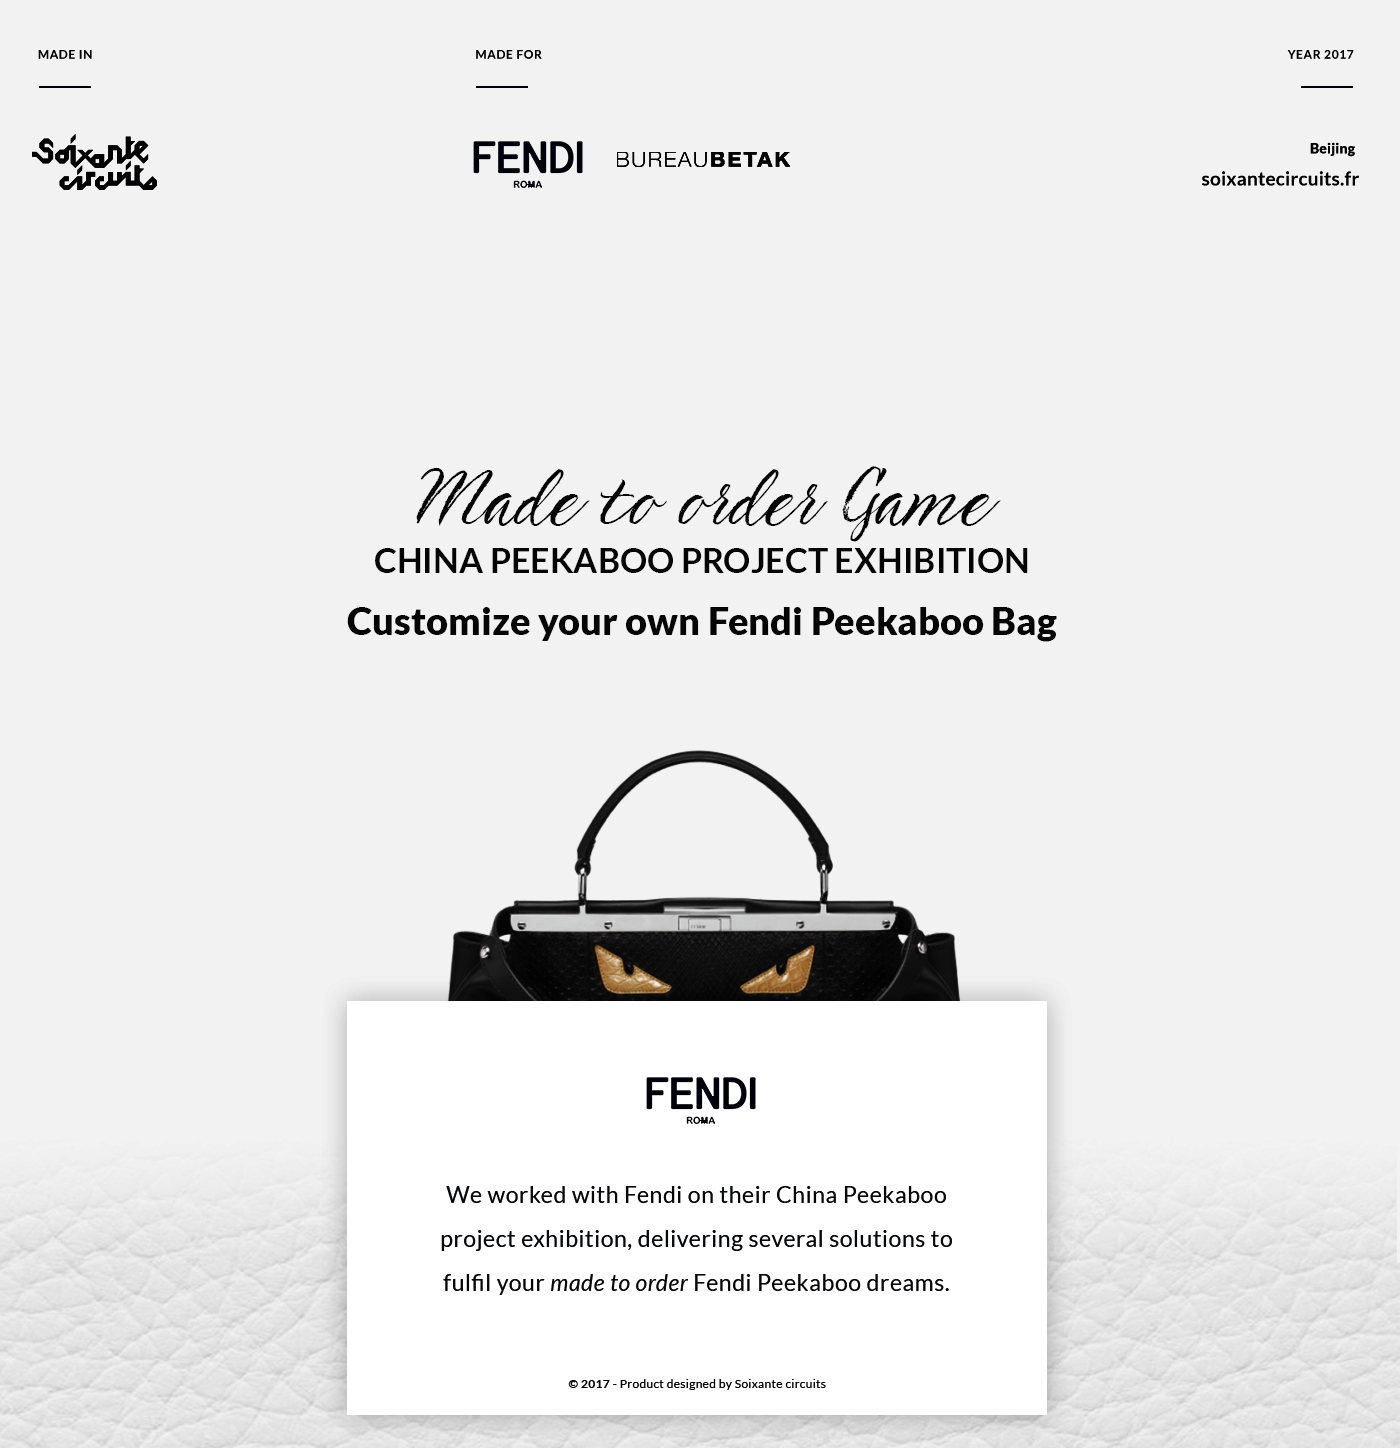 Fendi Made to order Game - China Peekaboo Project on Behance